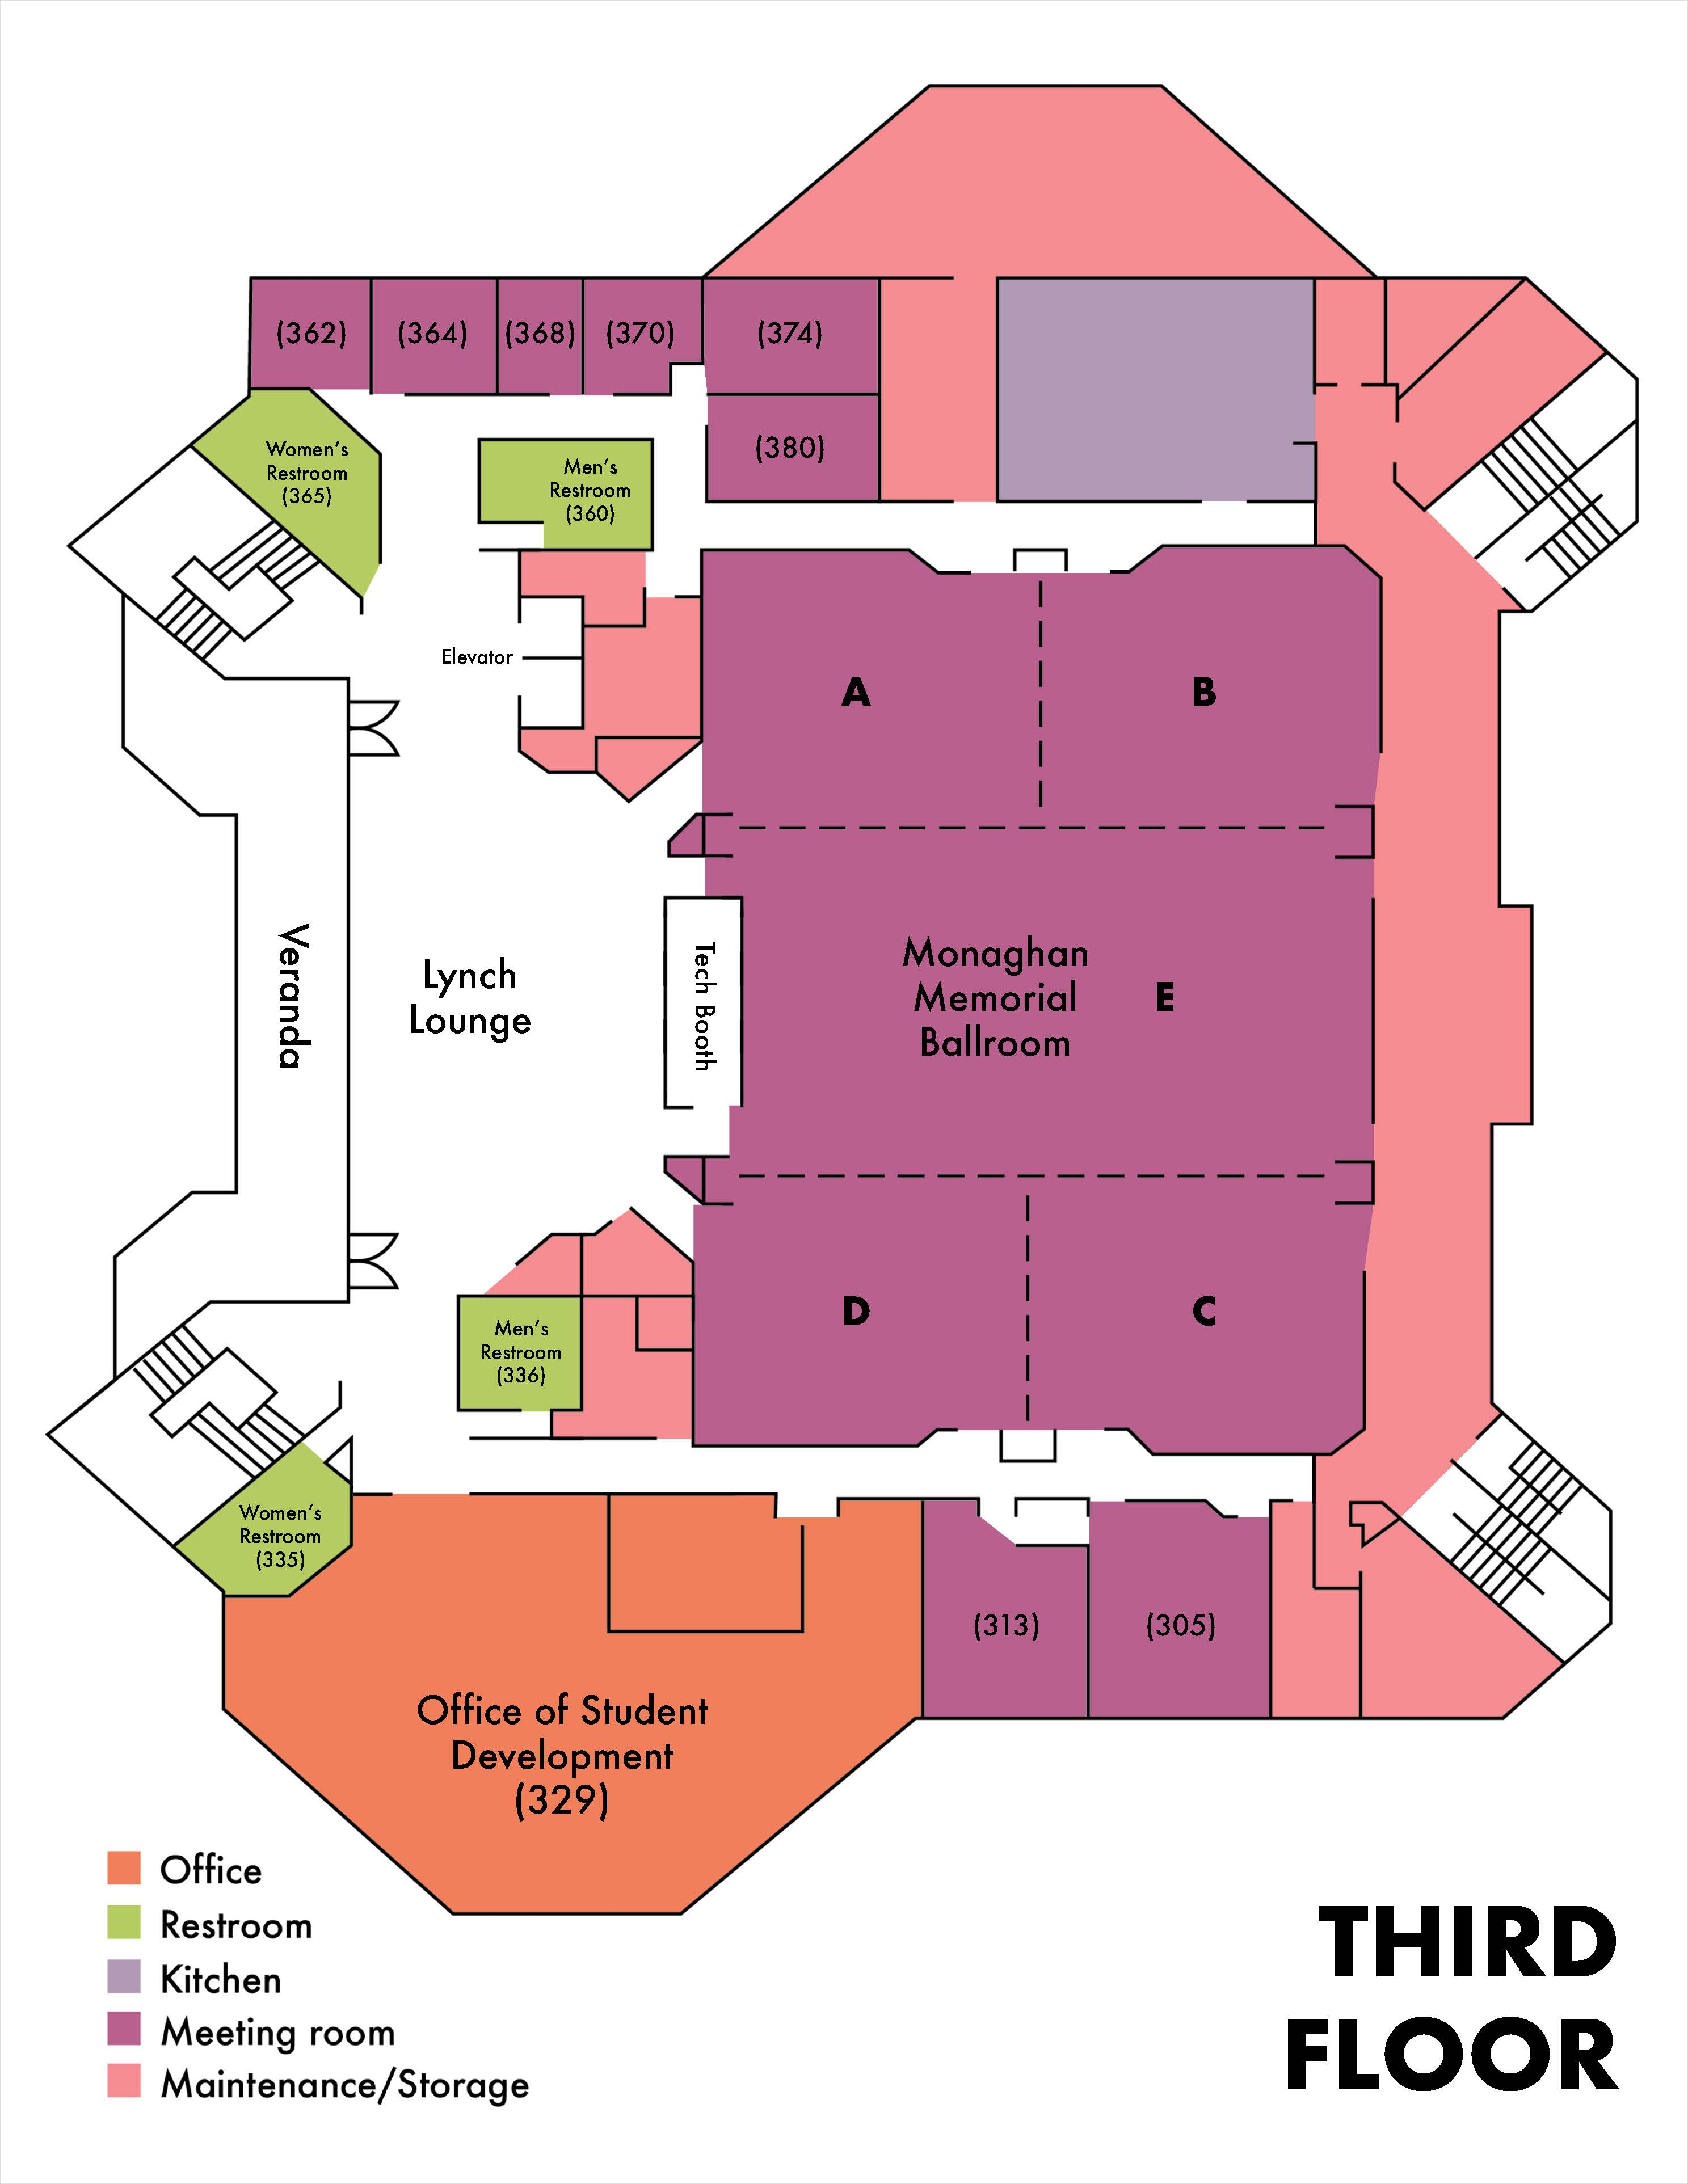 amu 3rd floor diagram